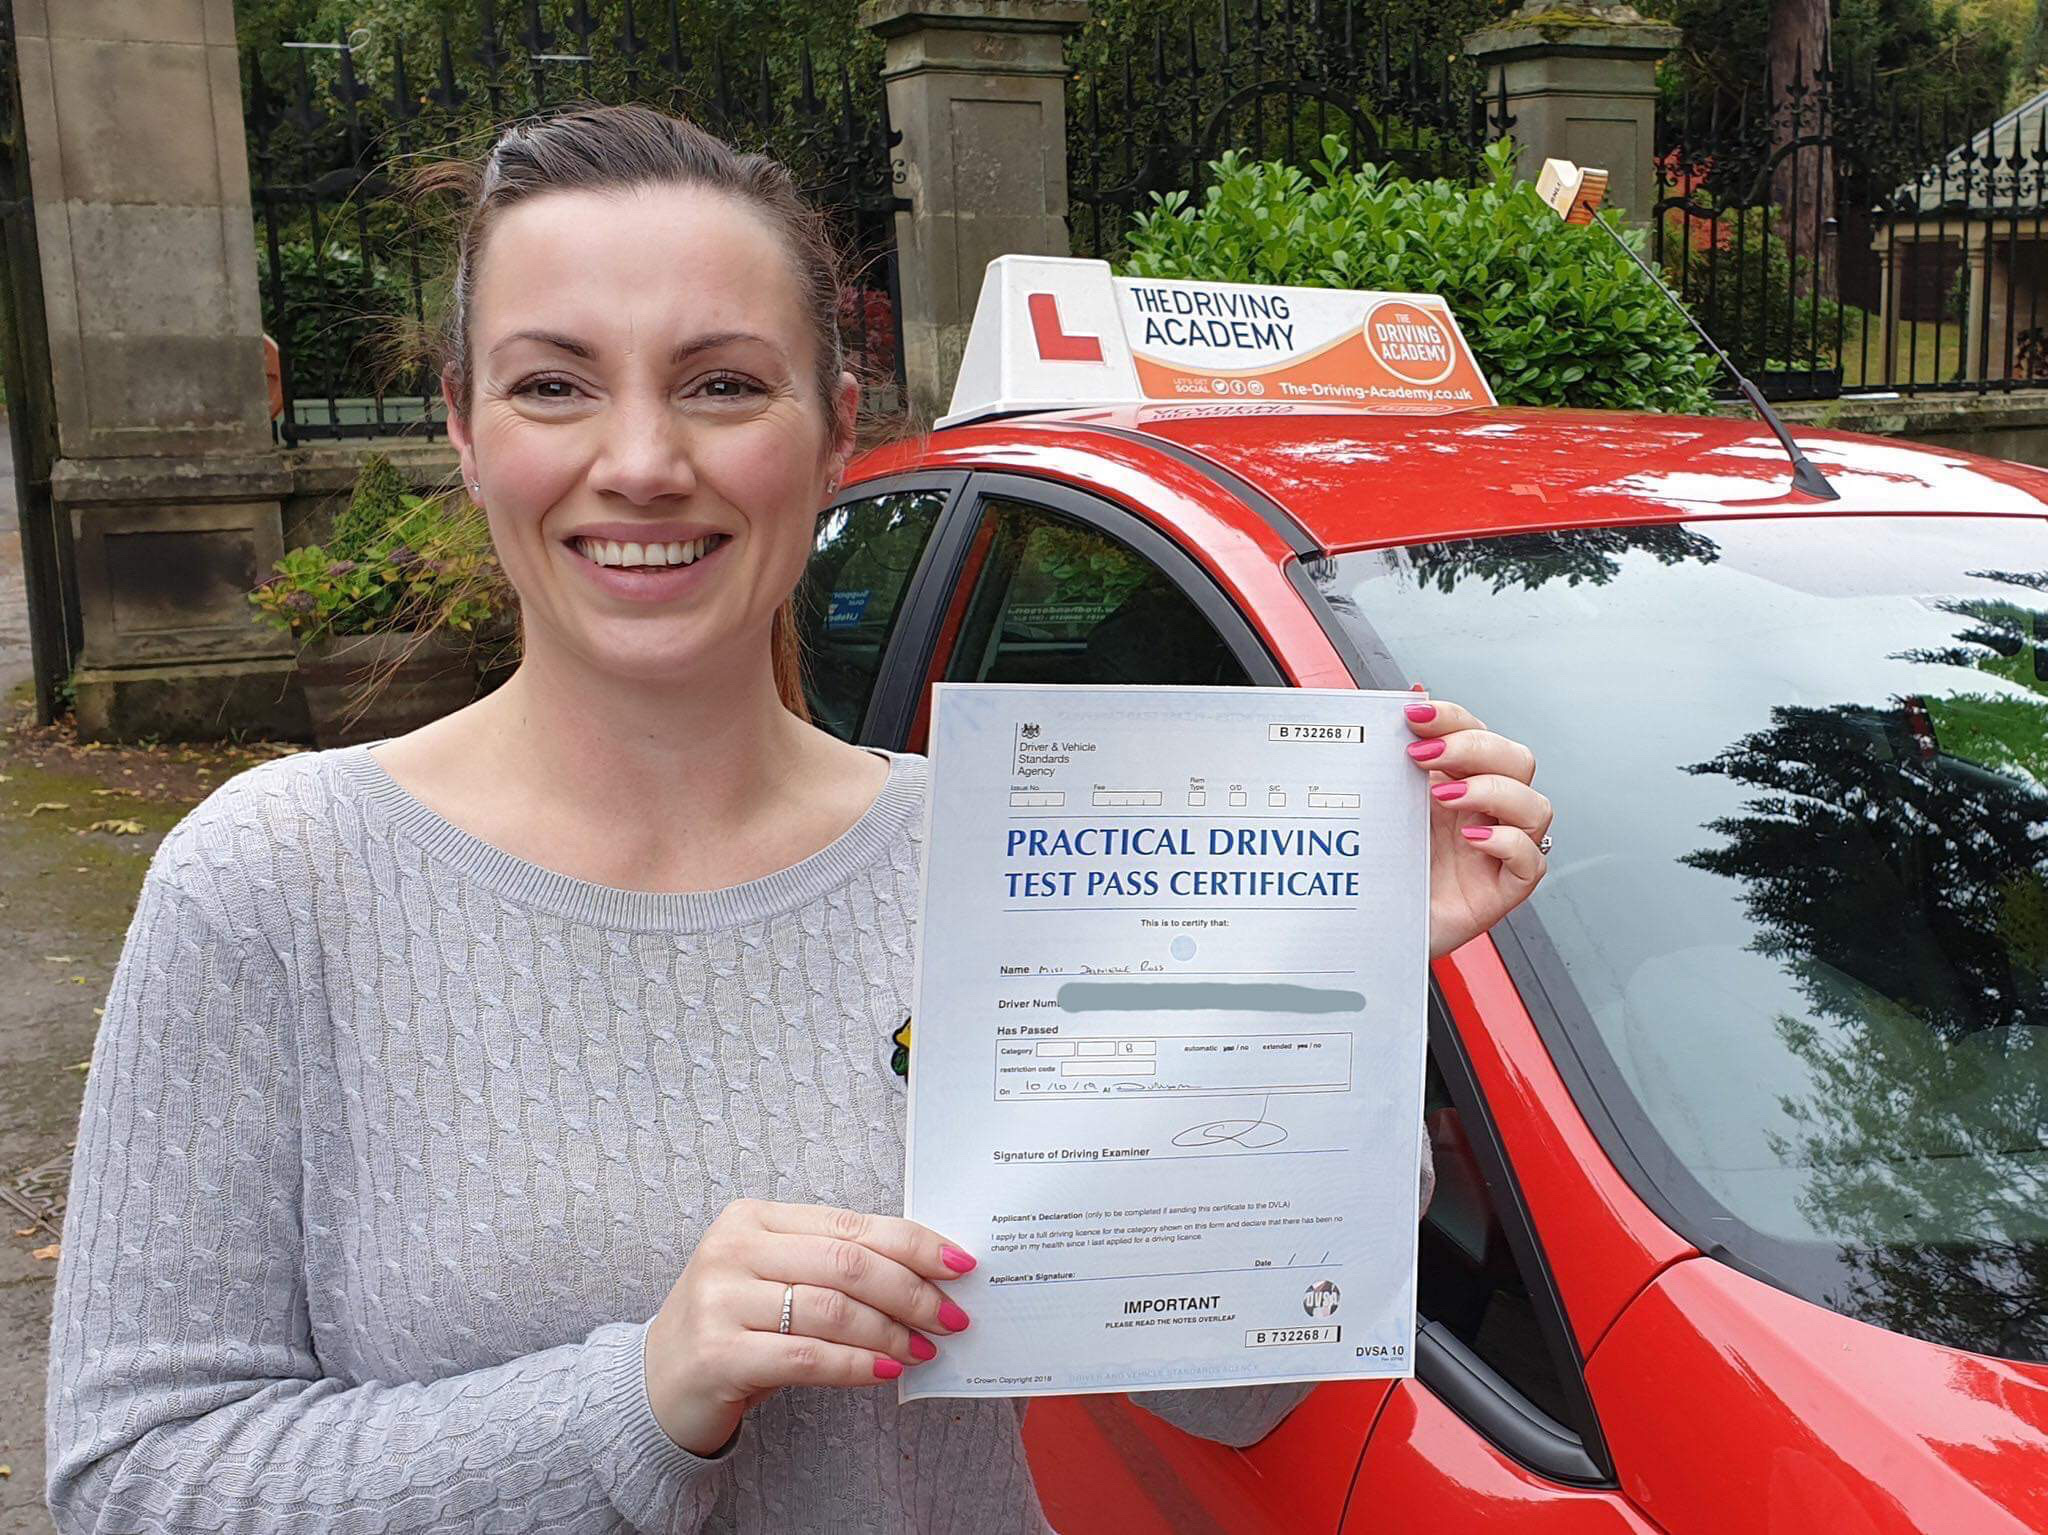 Danielle Douthwaite Passing her driving test in Durham with The-Driving-Academy